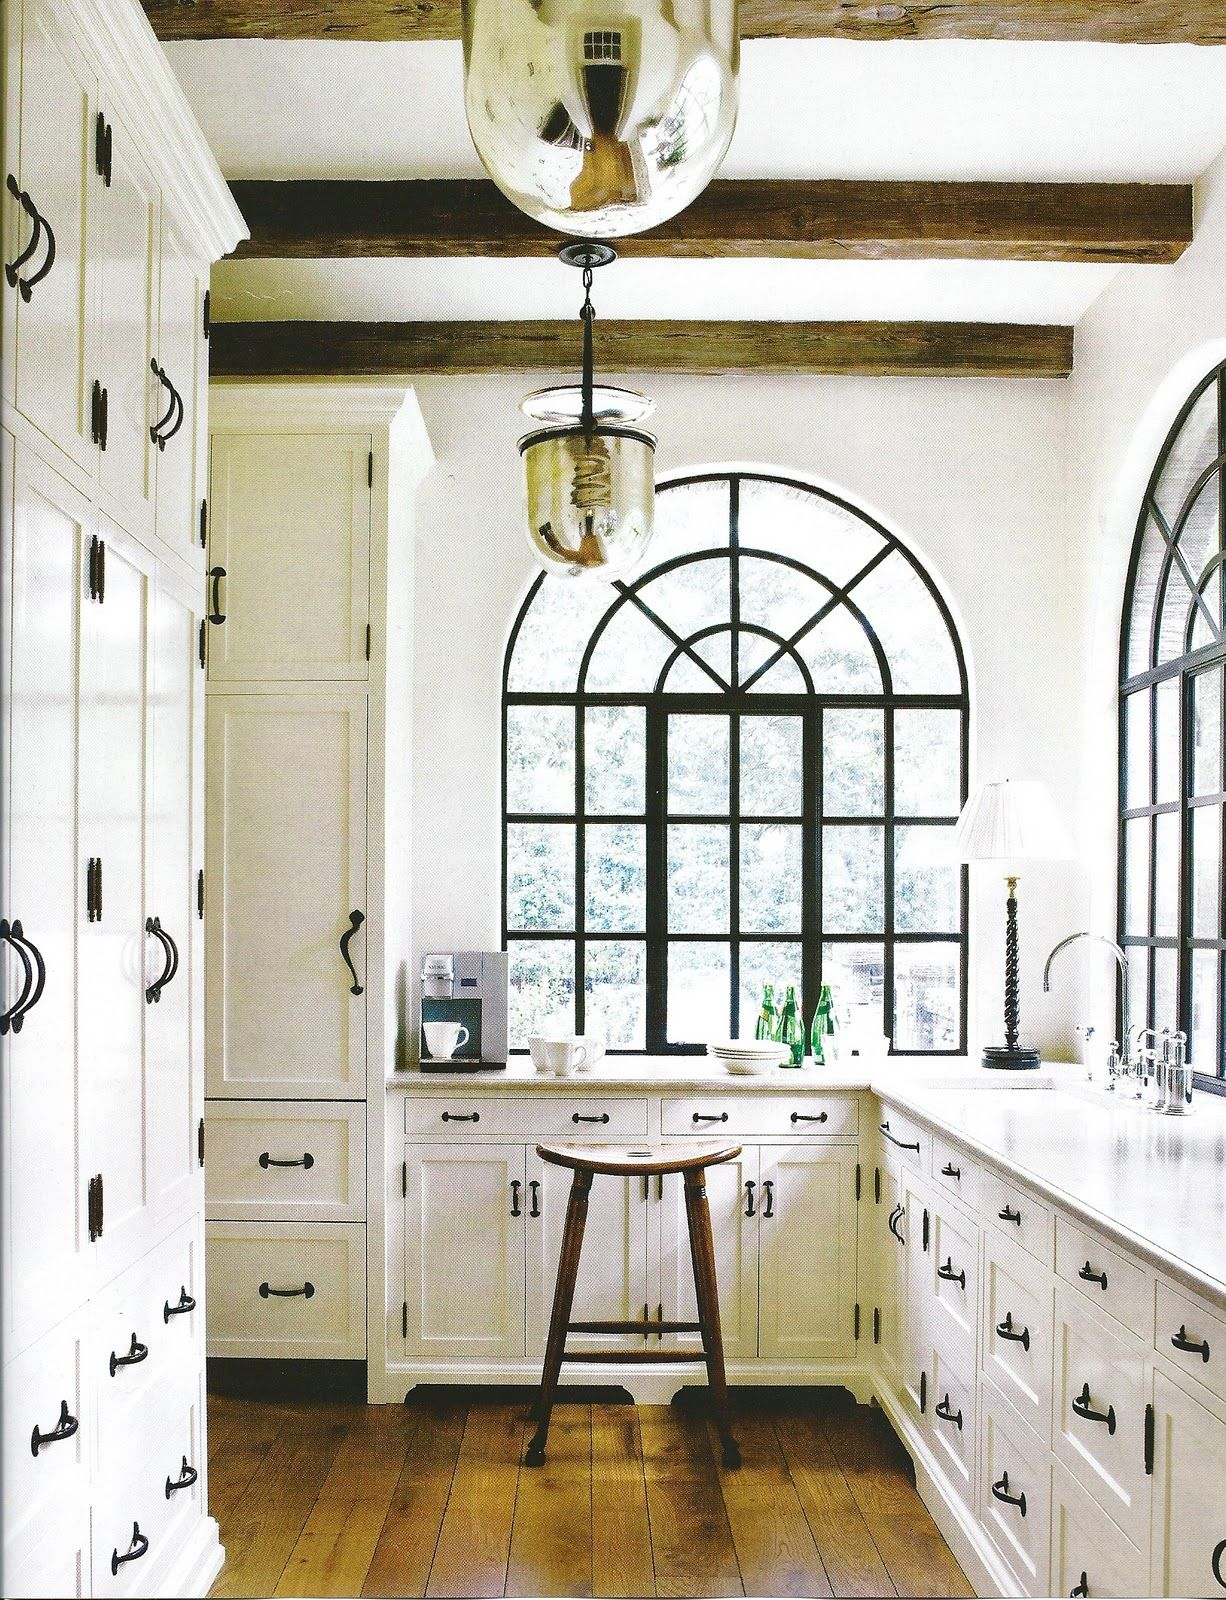 This Is Exactly How I Want The Cabinets To Look And The Warmth I Mesmerizing Hardware Kitchen Cabinets Design Inspiration